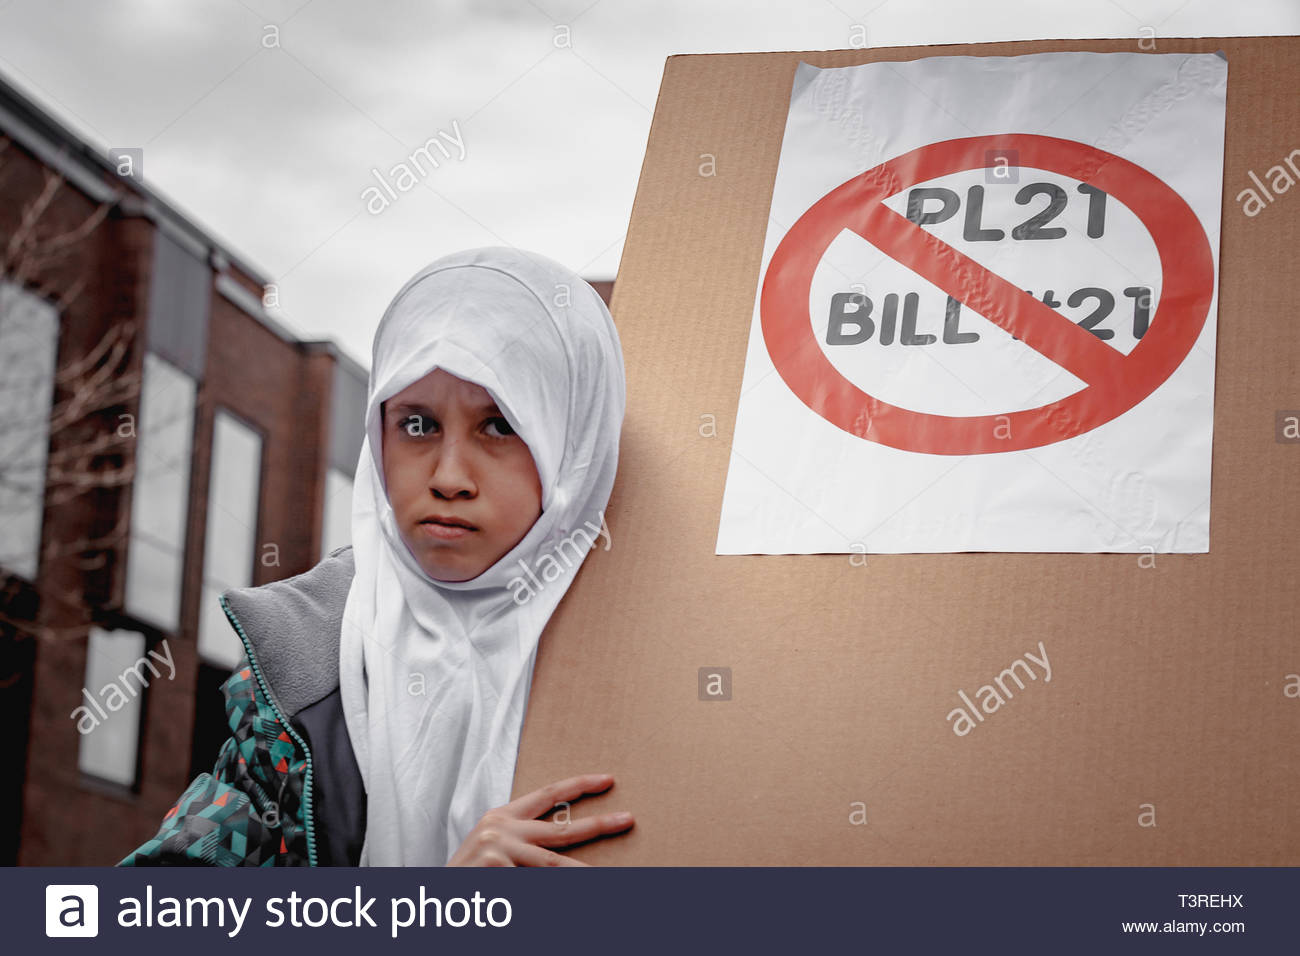 April 7, 2019 - Montreal, Canada: A veiled little girl, looking angry, holds a sign opposing Bill 21, during the demonstration against Bill 21 on secu - Stock Image